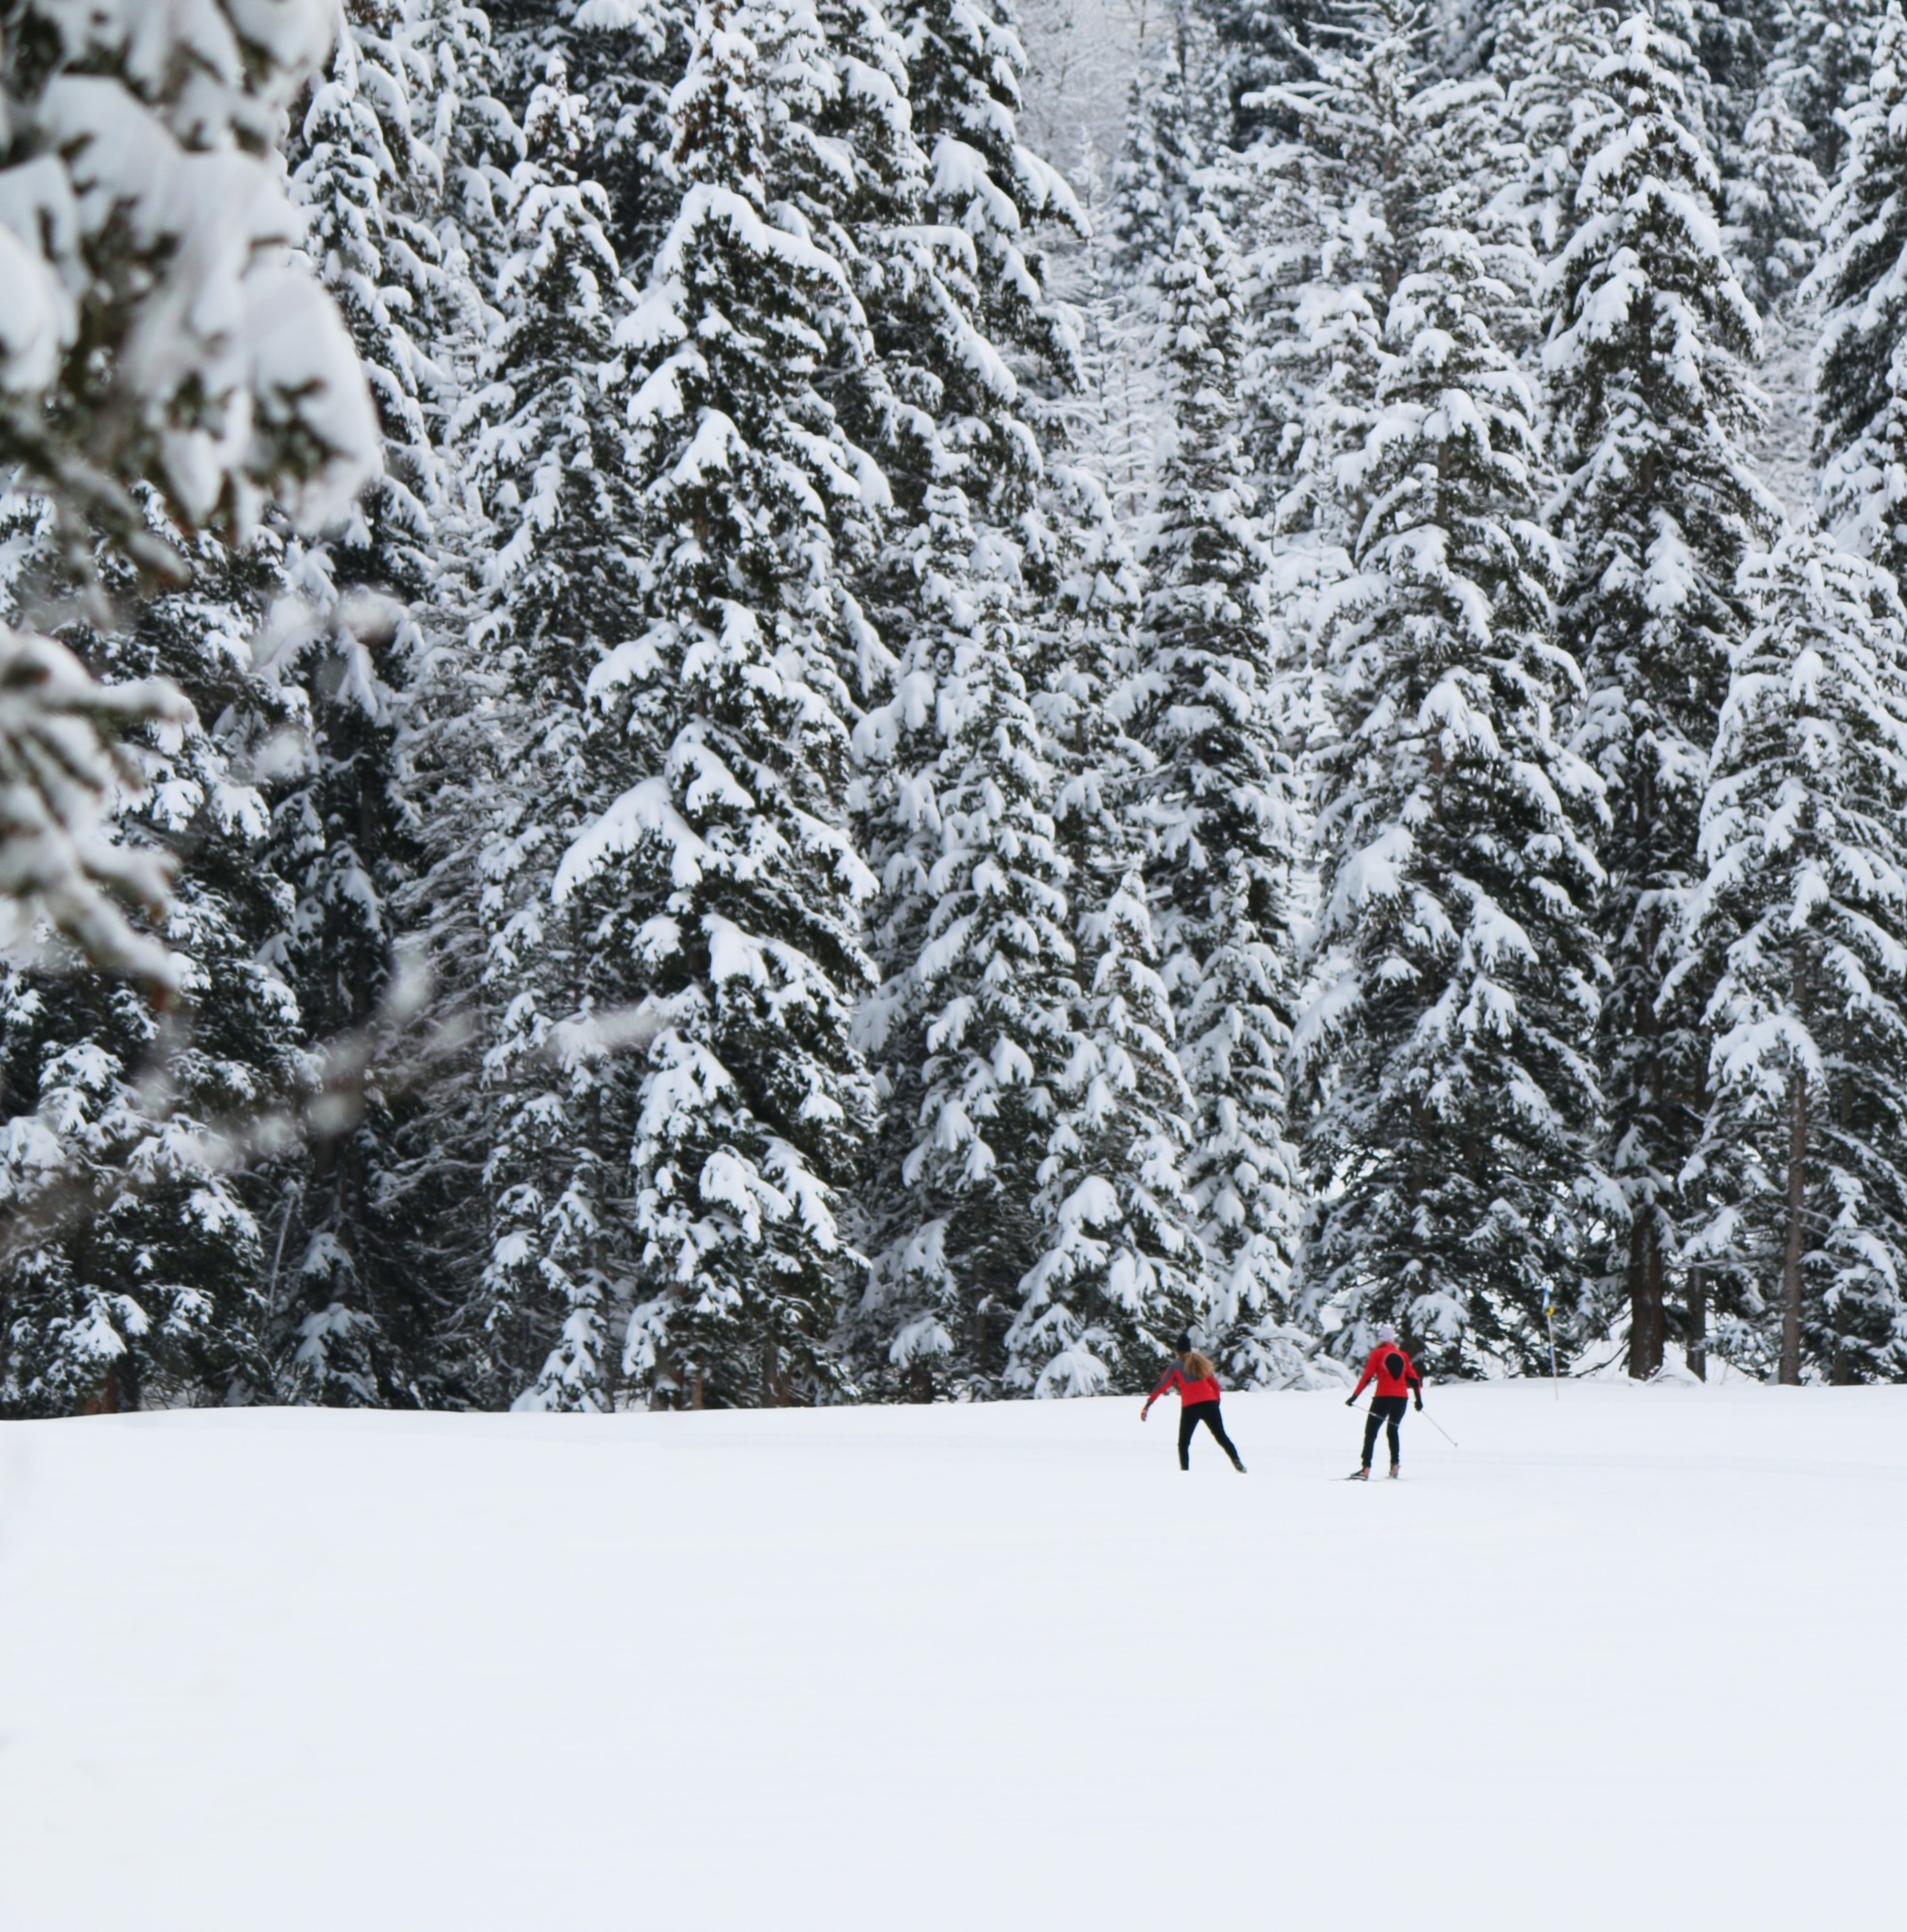 Two people skiing near woods